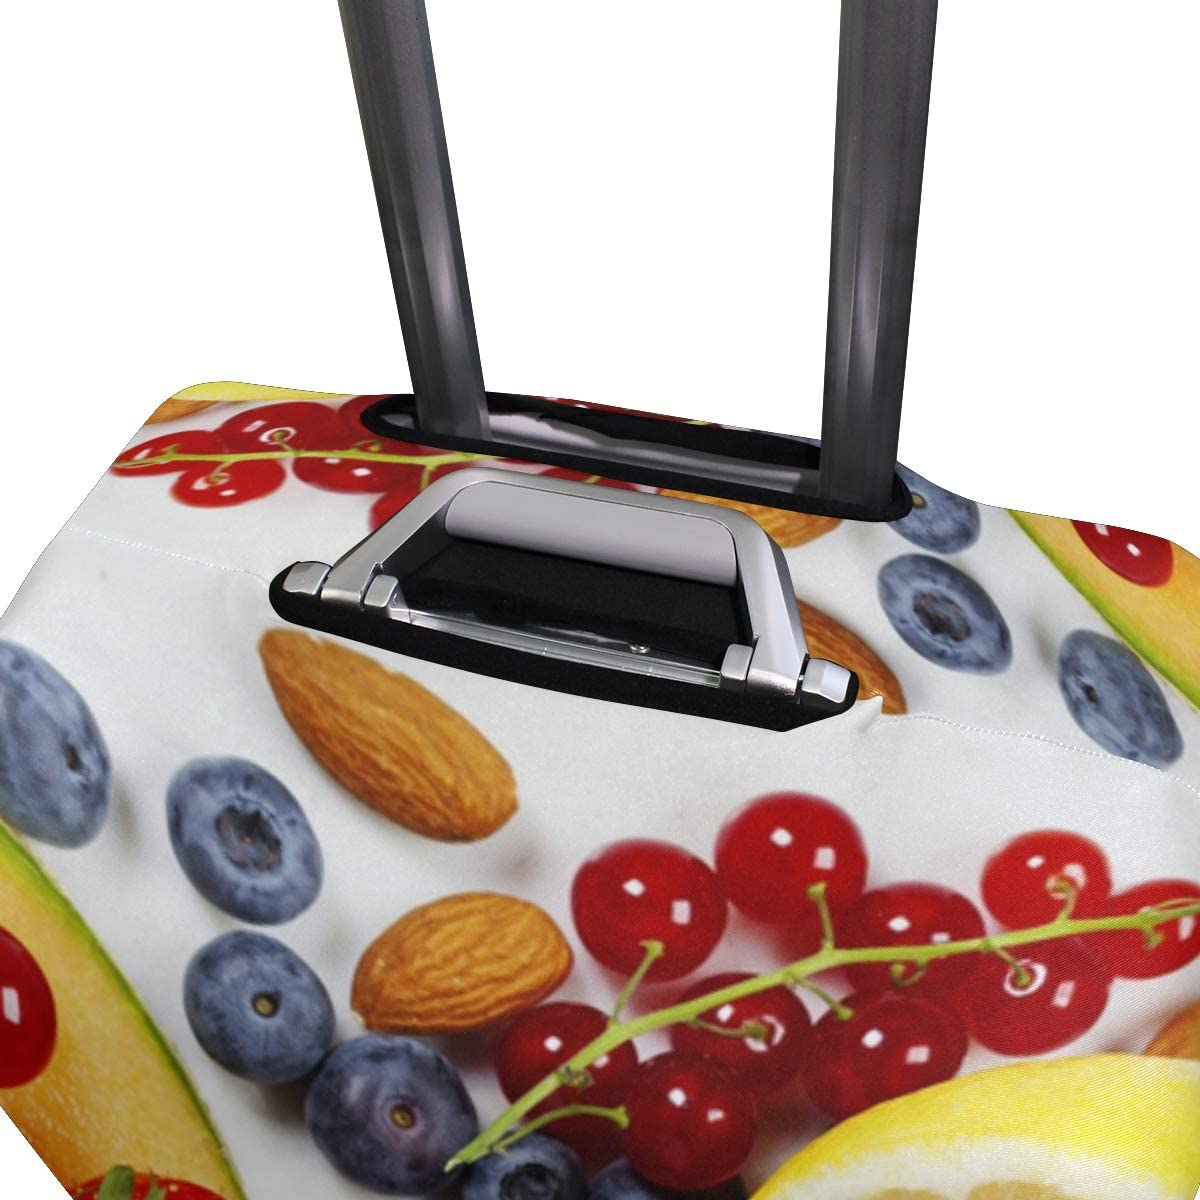 Luggage Cover Creative Elastic Fruit Blueberries Cherry Citrus Travel Suitcase Protector Fits 26-28 Inch